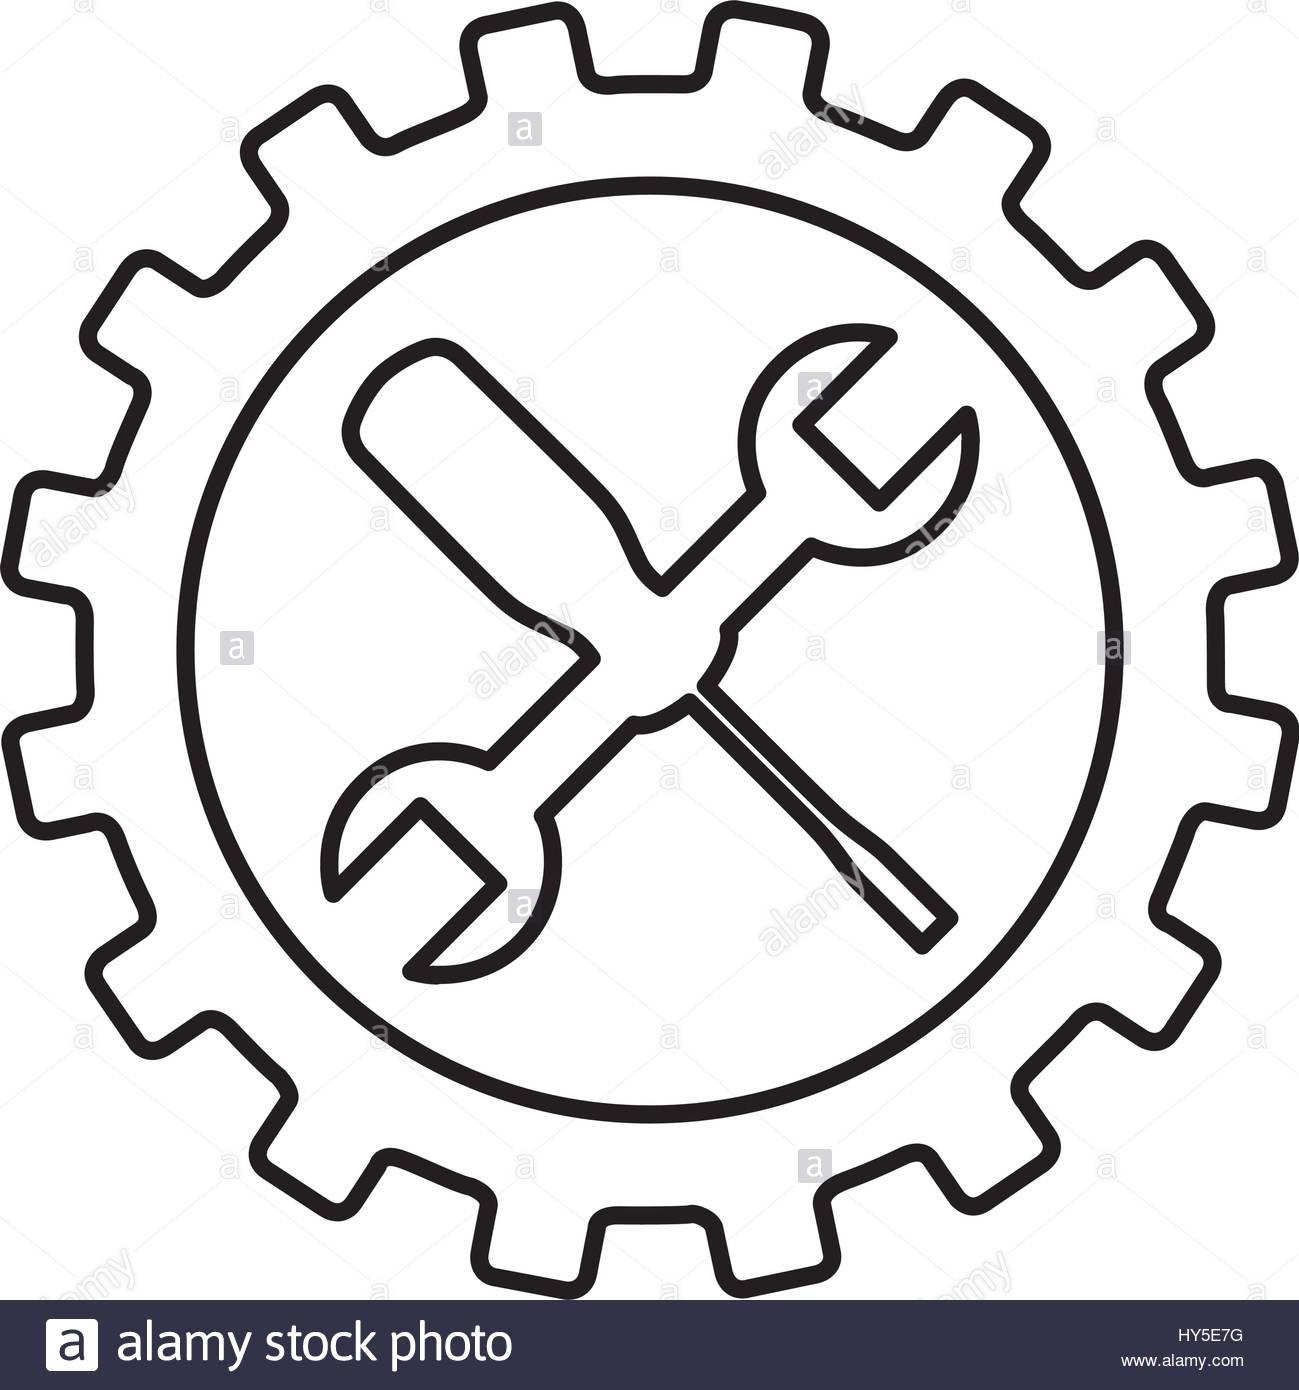 1299x1390 Wrench And Screwdriver Mechanic Tools Icon Stock Vector Art